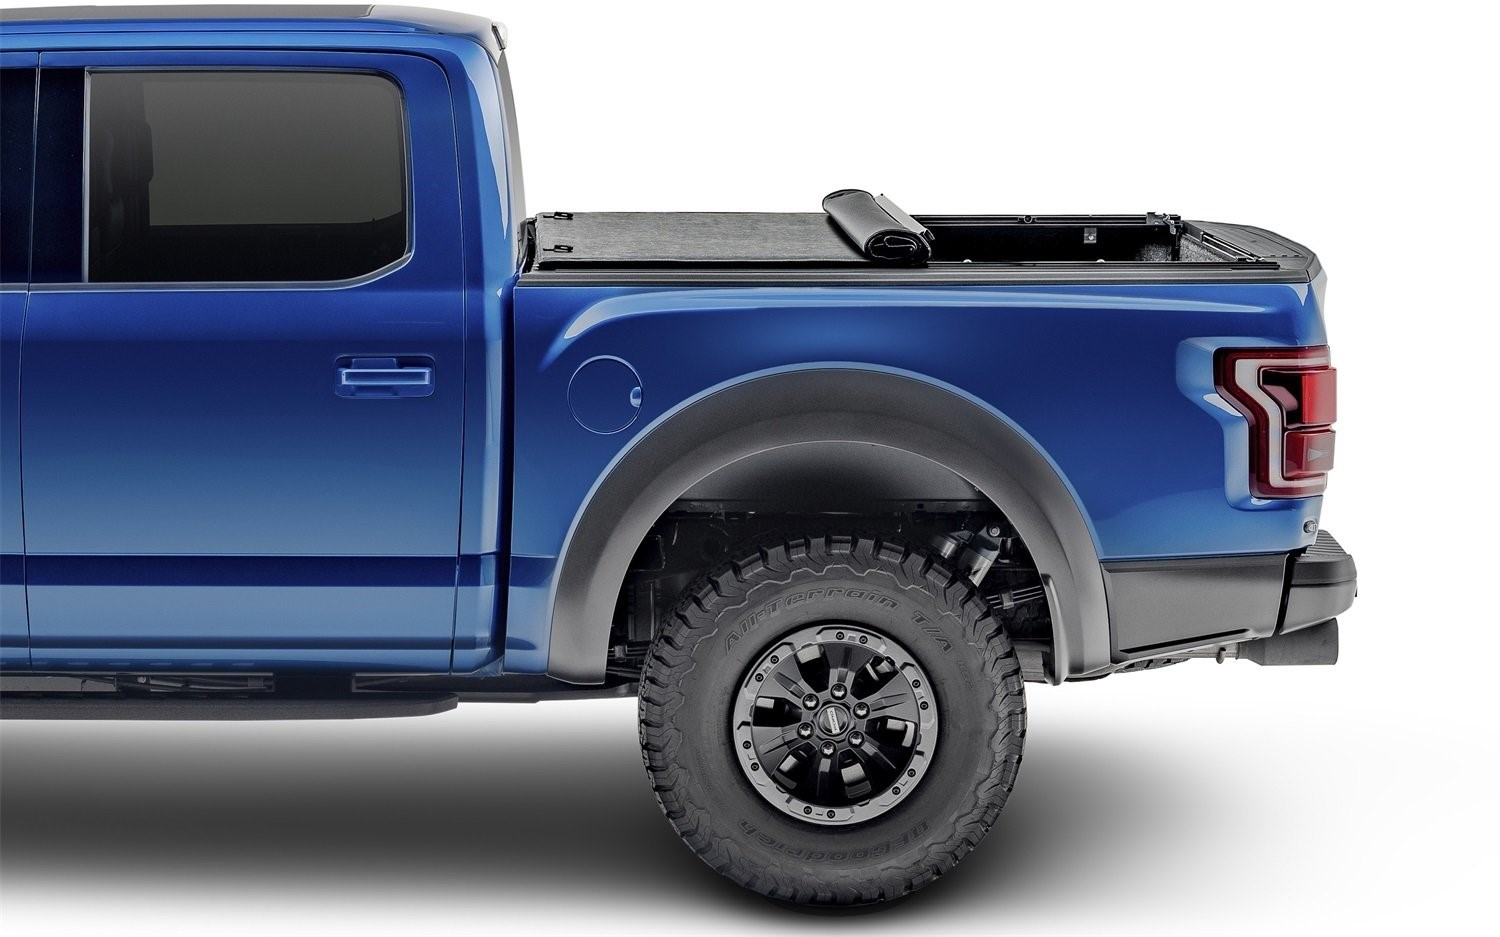 Ford F-150 with soft roll-up tonneau cover